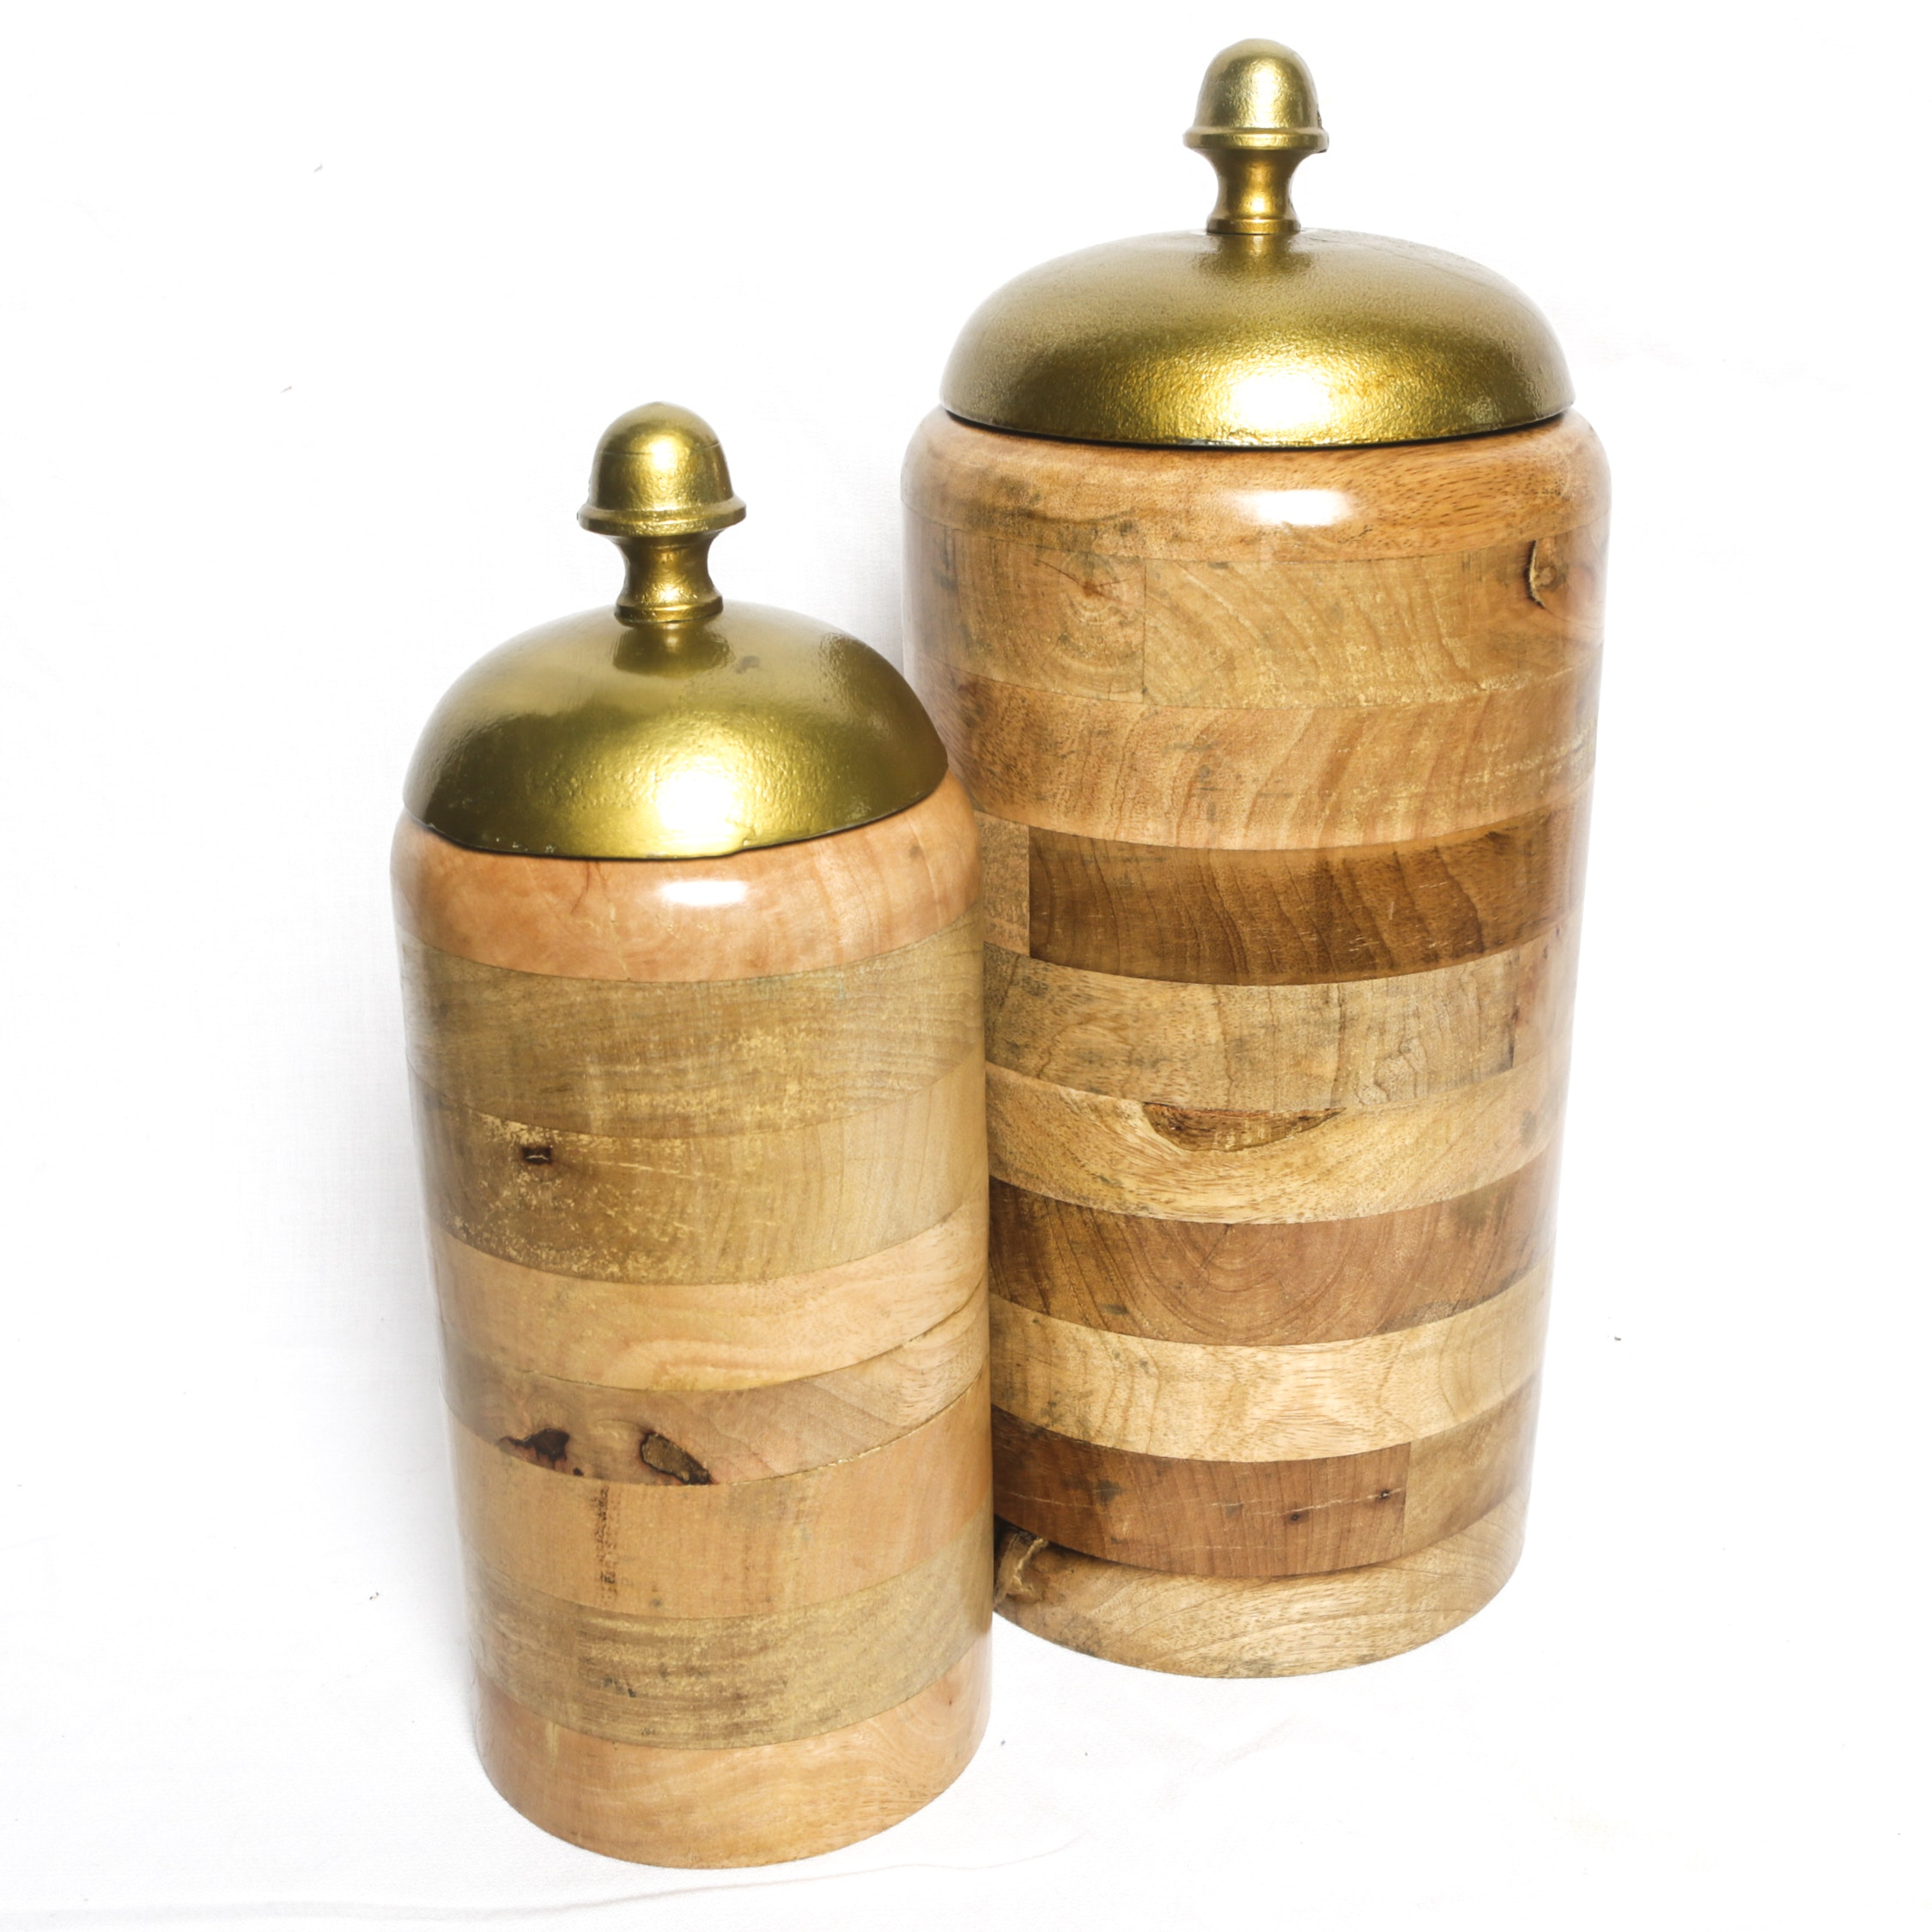 Banded Wood Canisters with Metal Lids